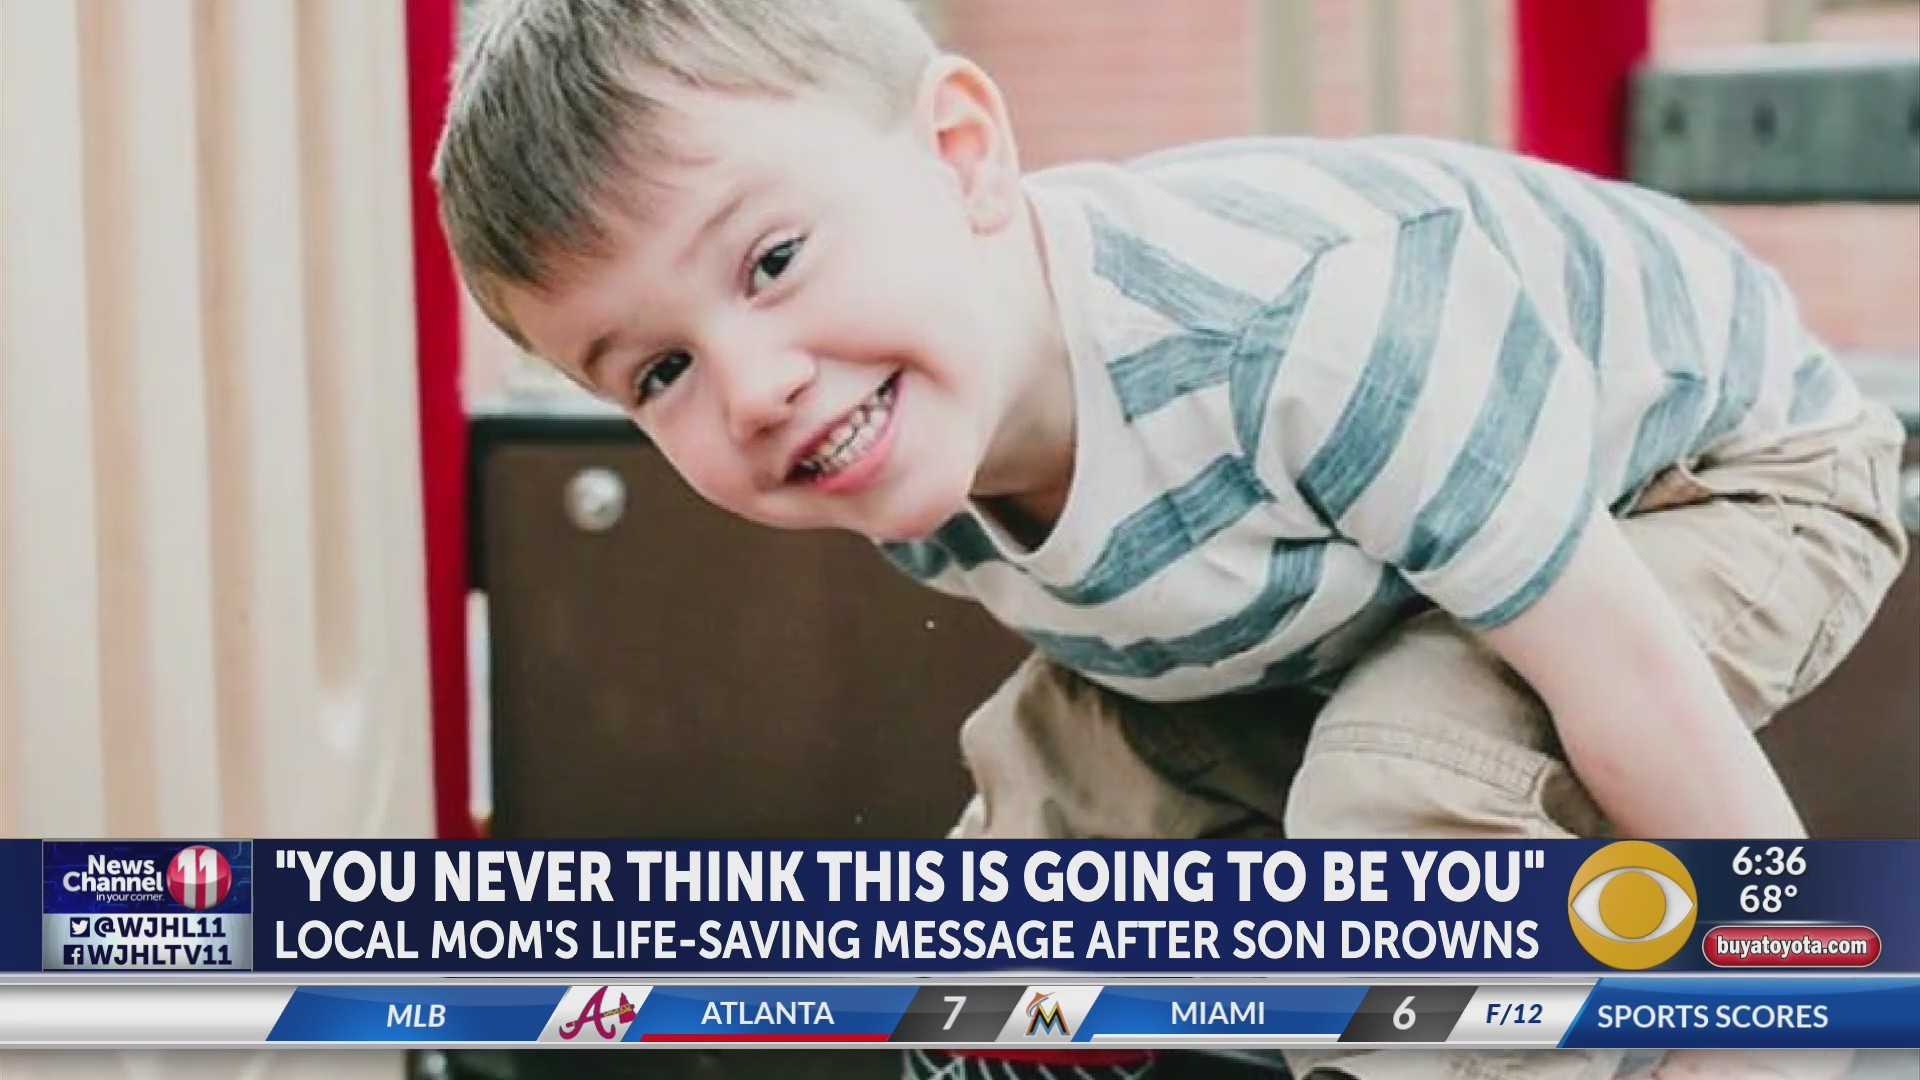 LEVI'S LEGACY: Local mom shares story of son's drowning to warn others